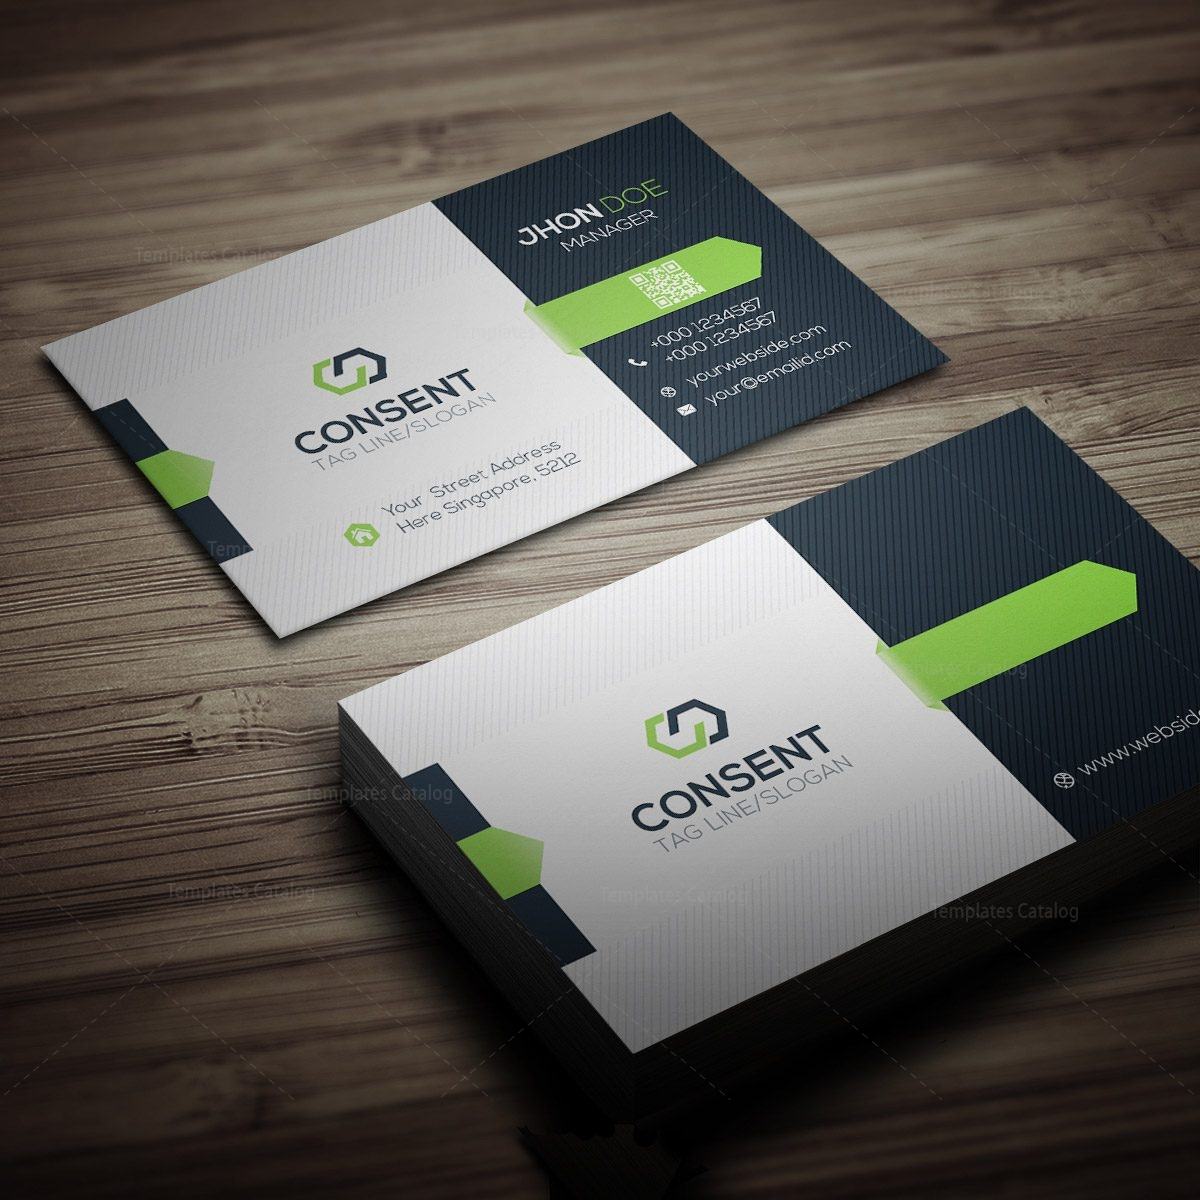 Consent business card template 000275 template catalog consent business card template 3 cheaphphosting